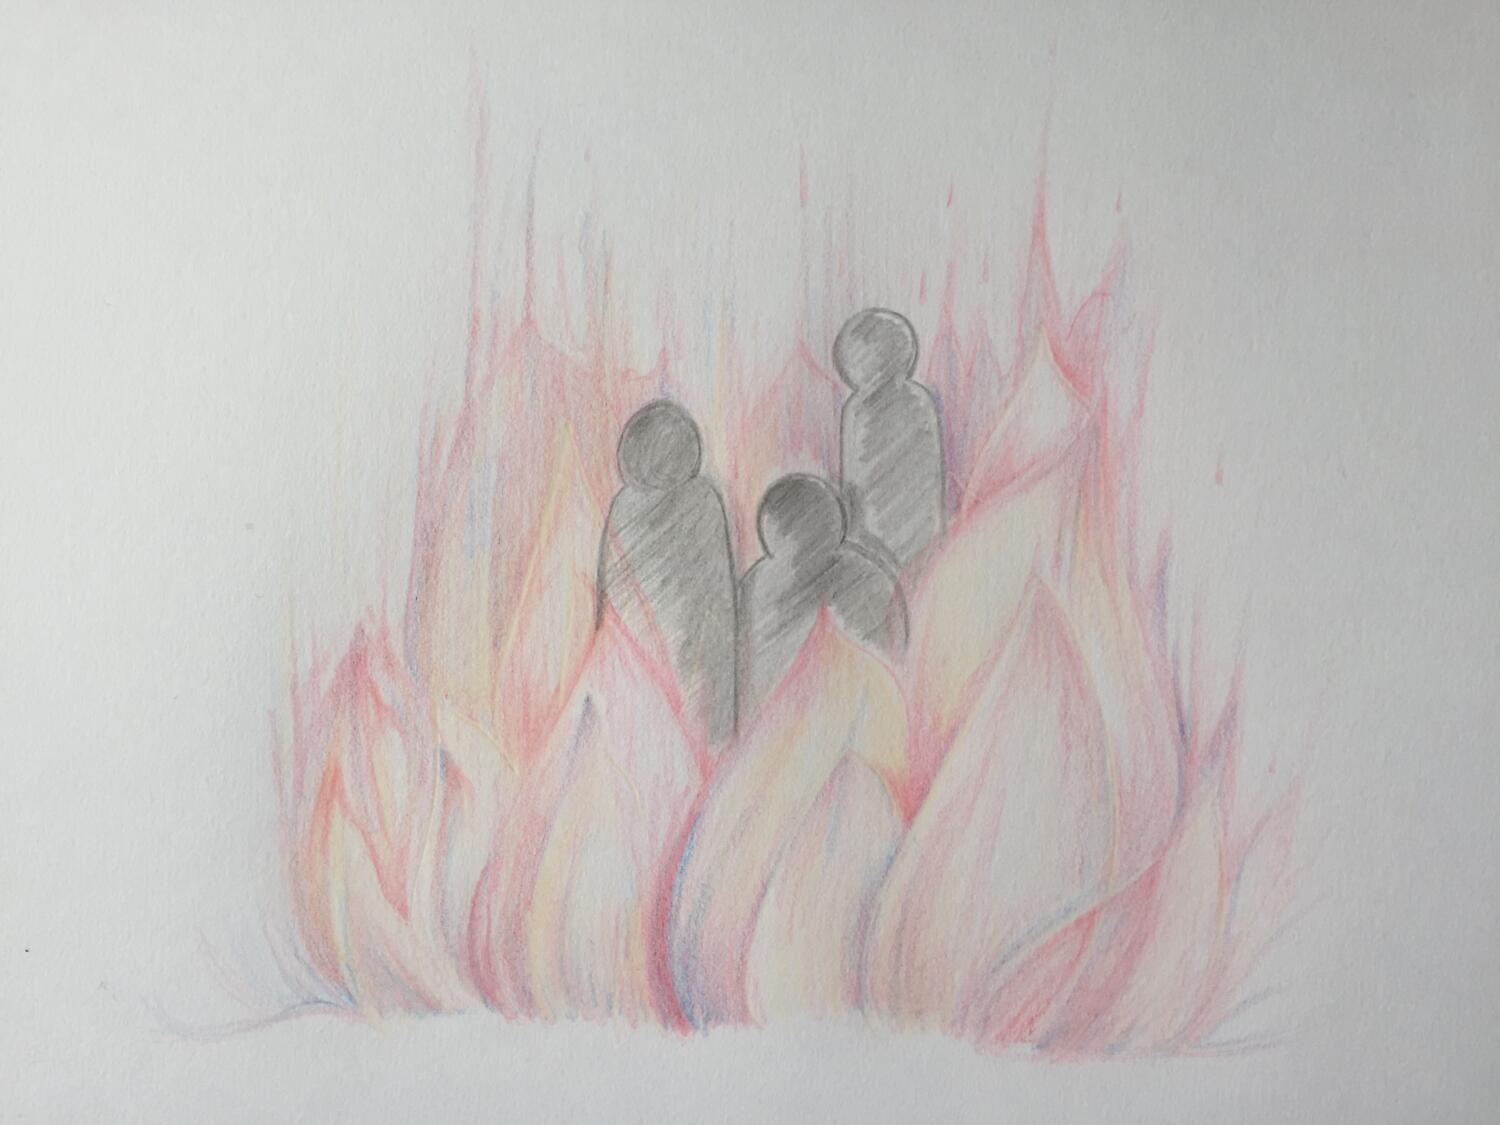 Celia-Pringle-Three-men-in-the-fire